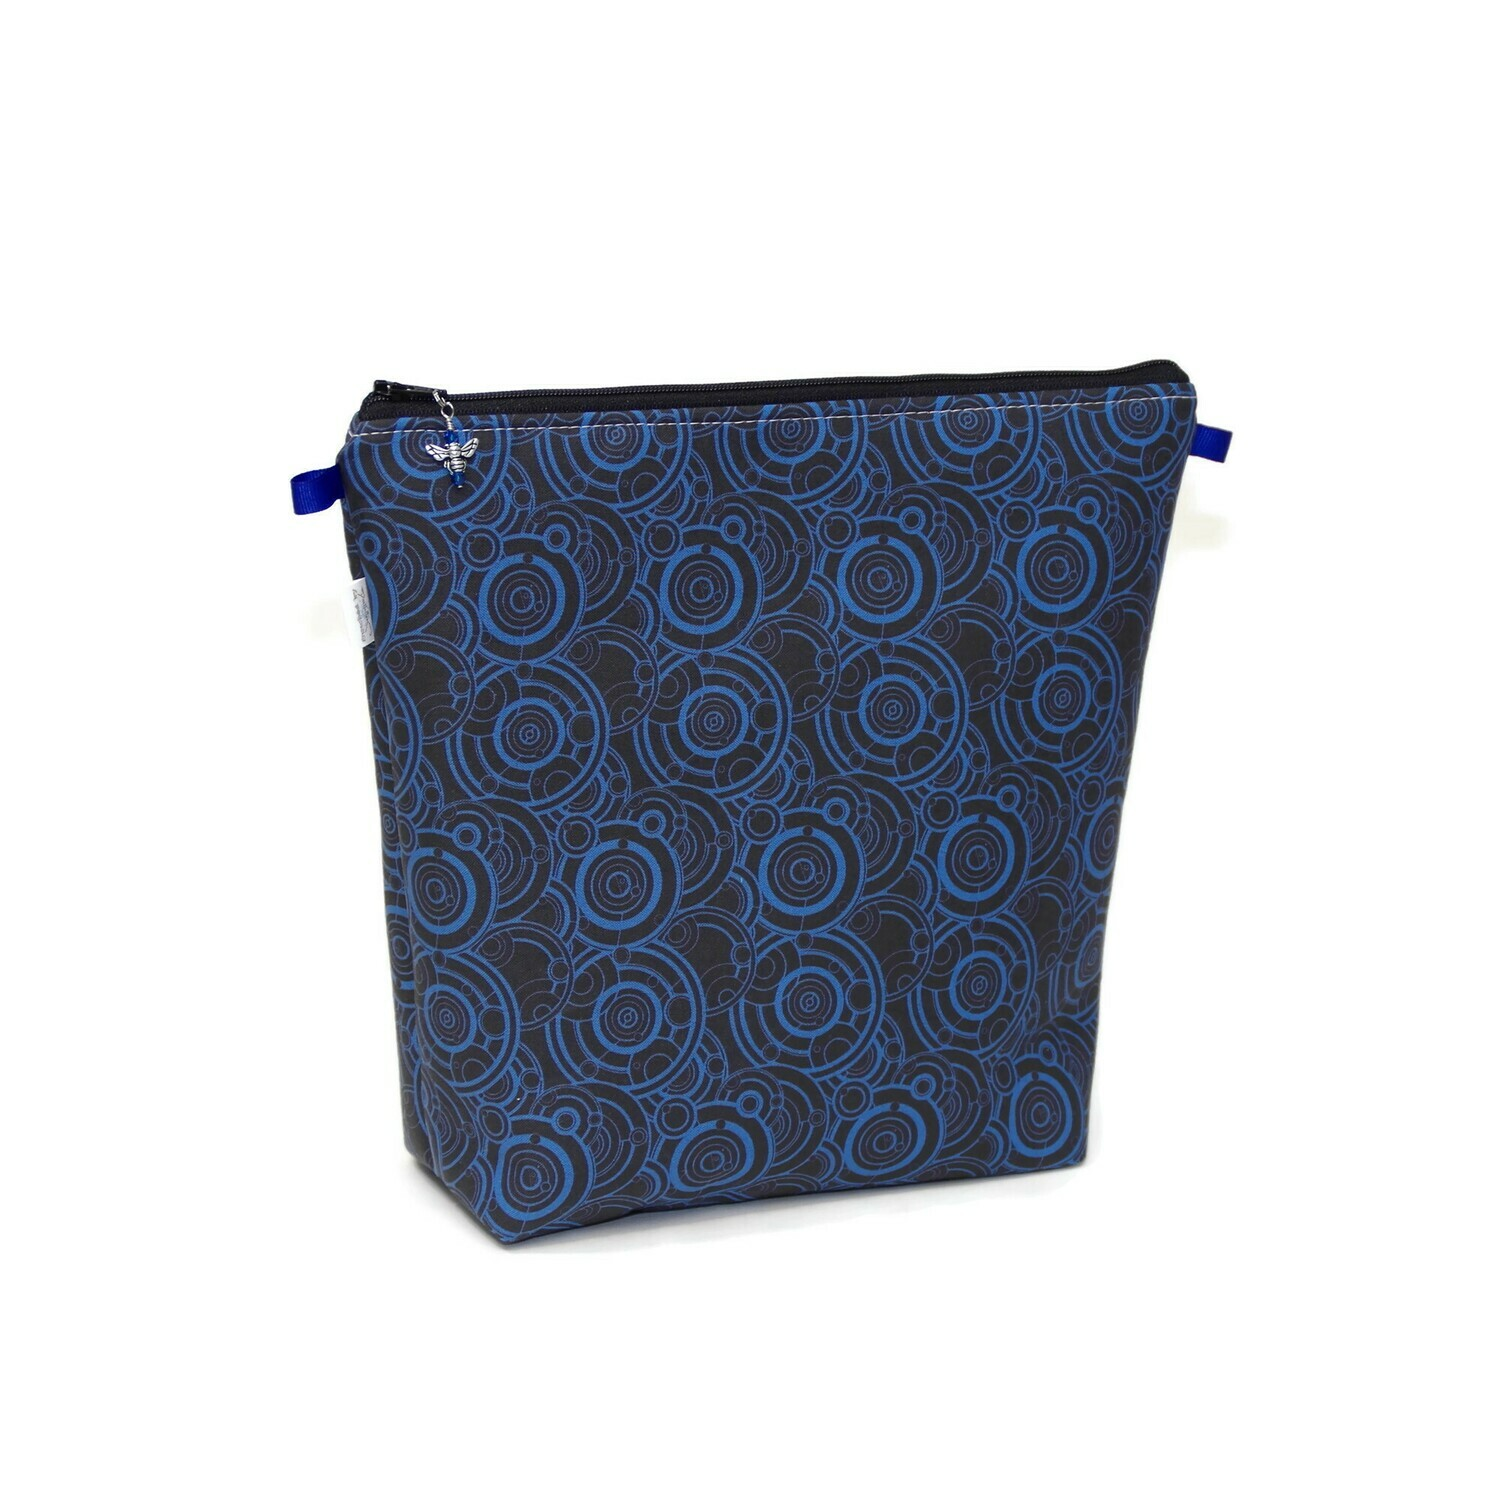 Whovian - Gallifreyan - Large Wedge